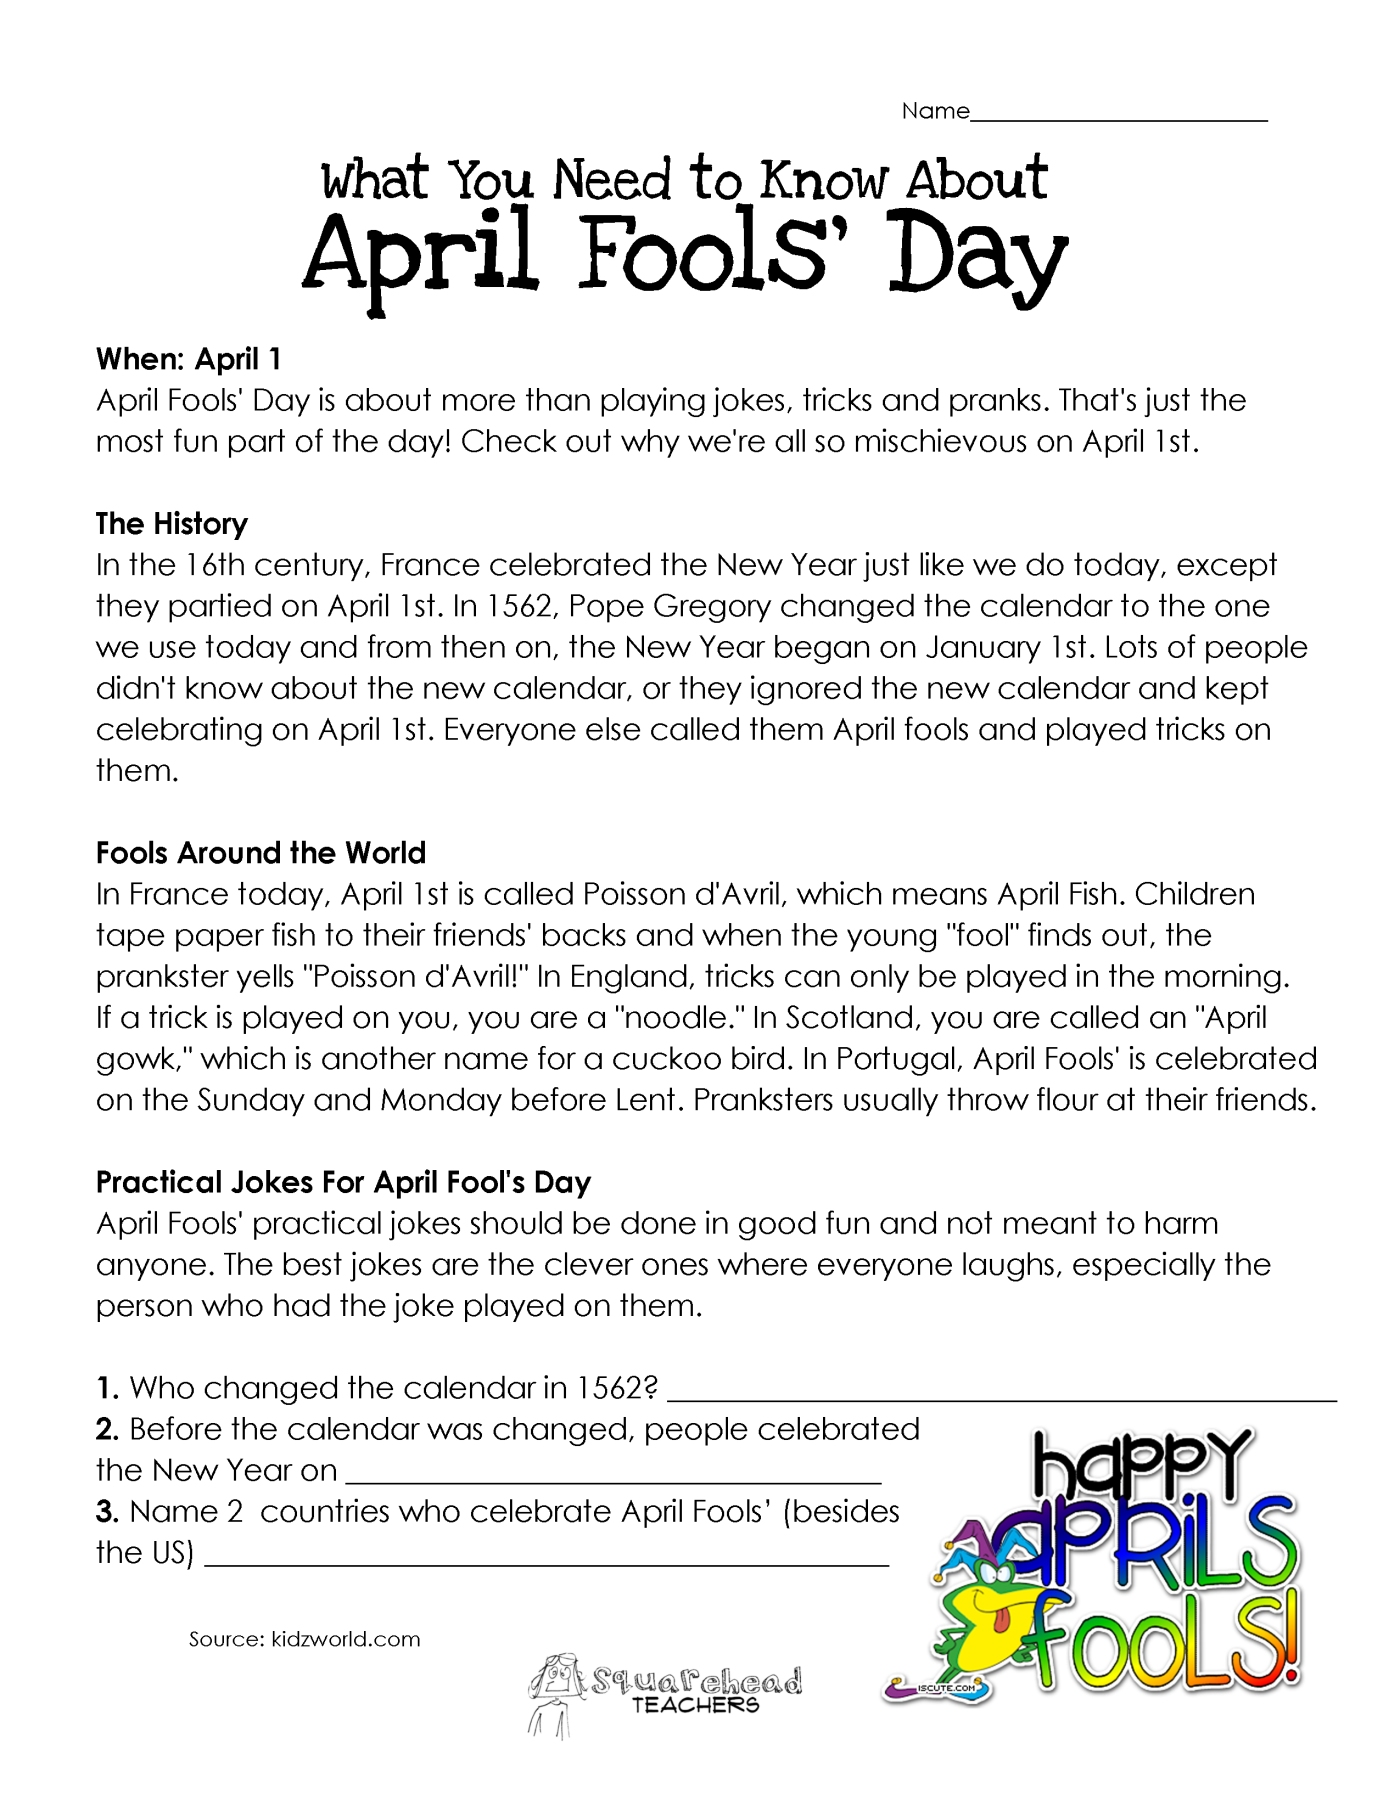 What You Need to Know About April Fool's Day | Squarehead ...